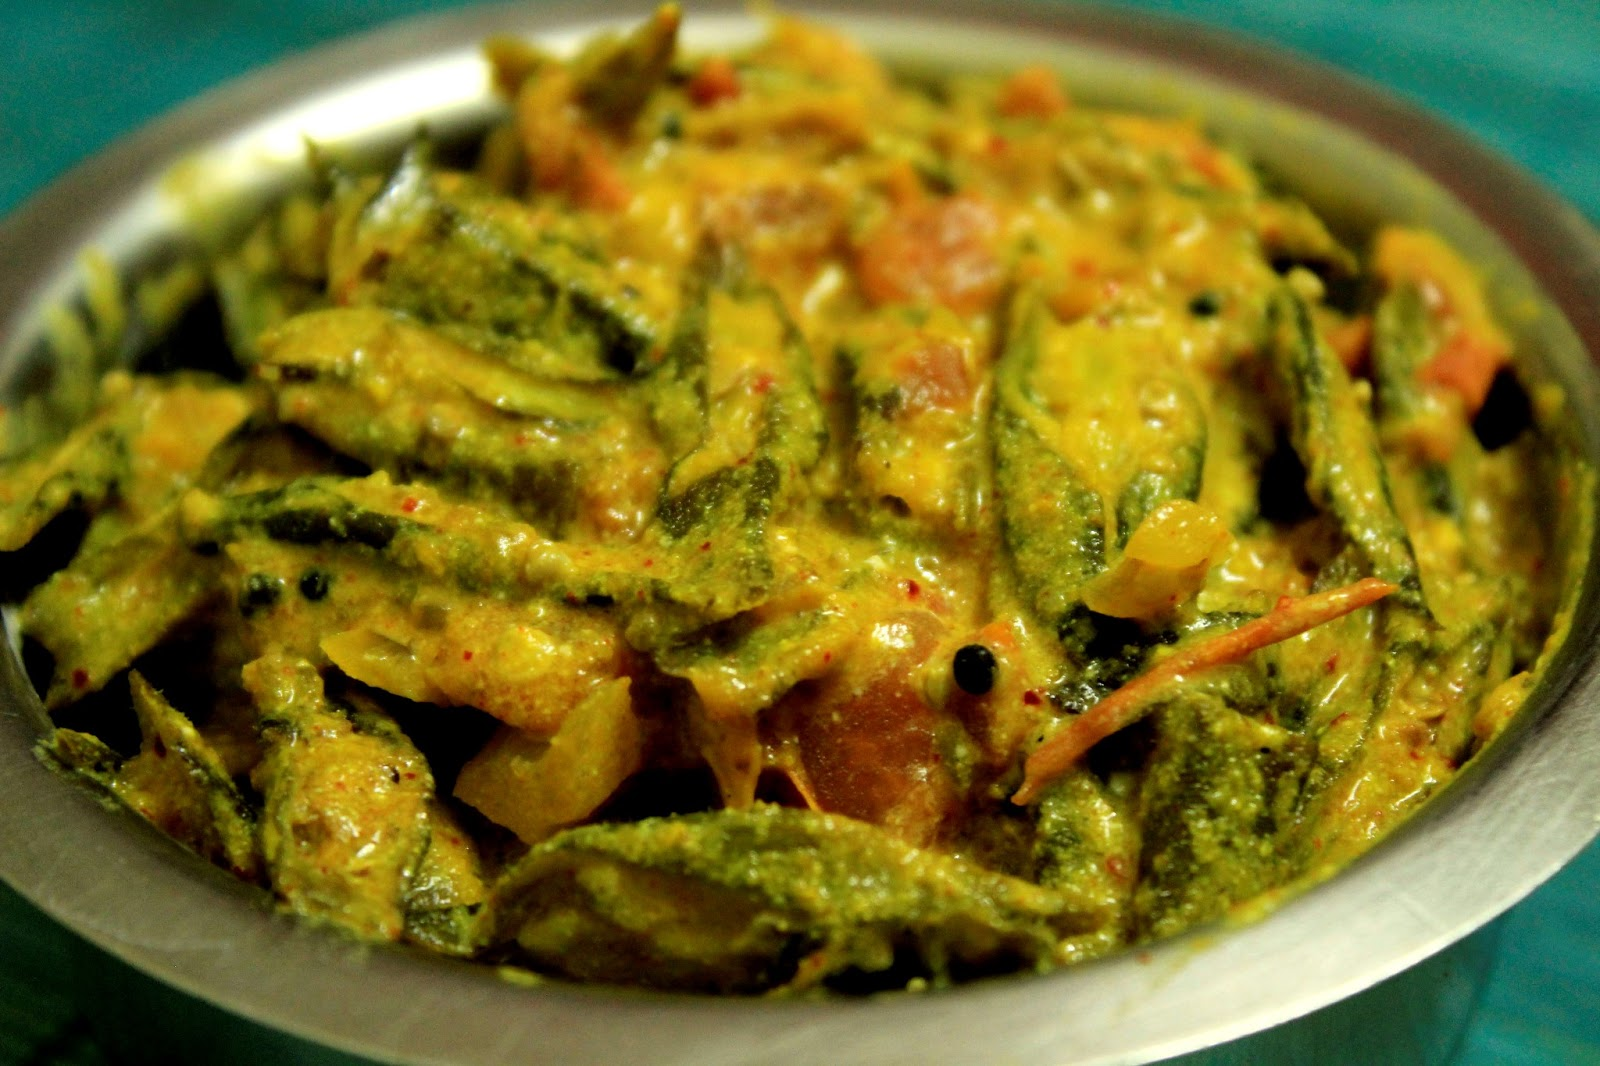 Okra cooked with yogurt and spices